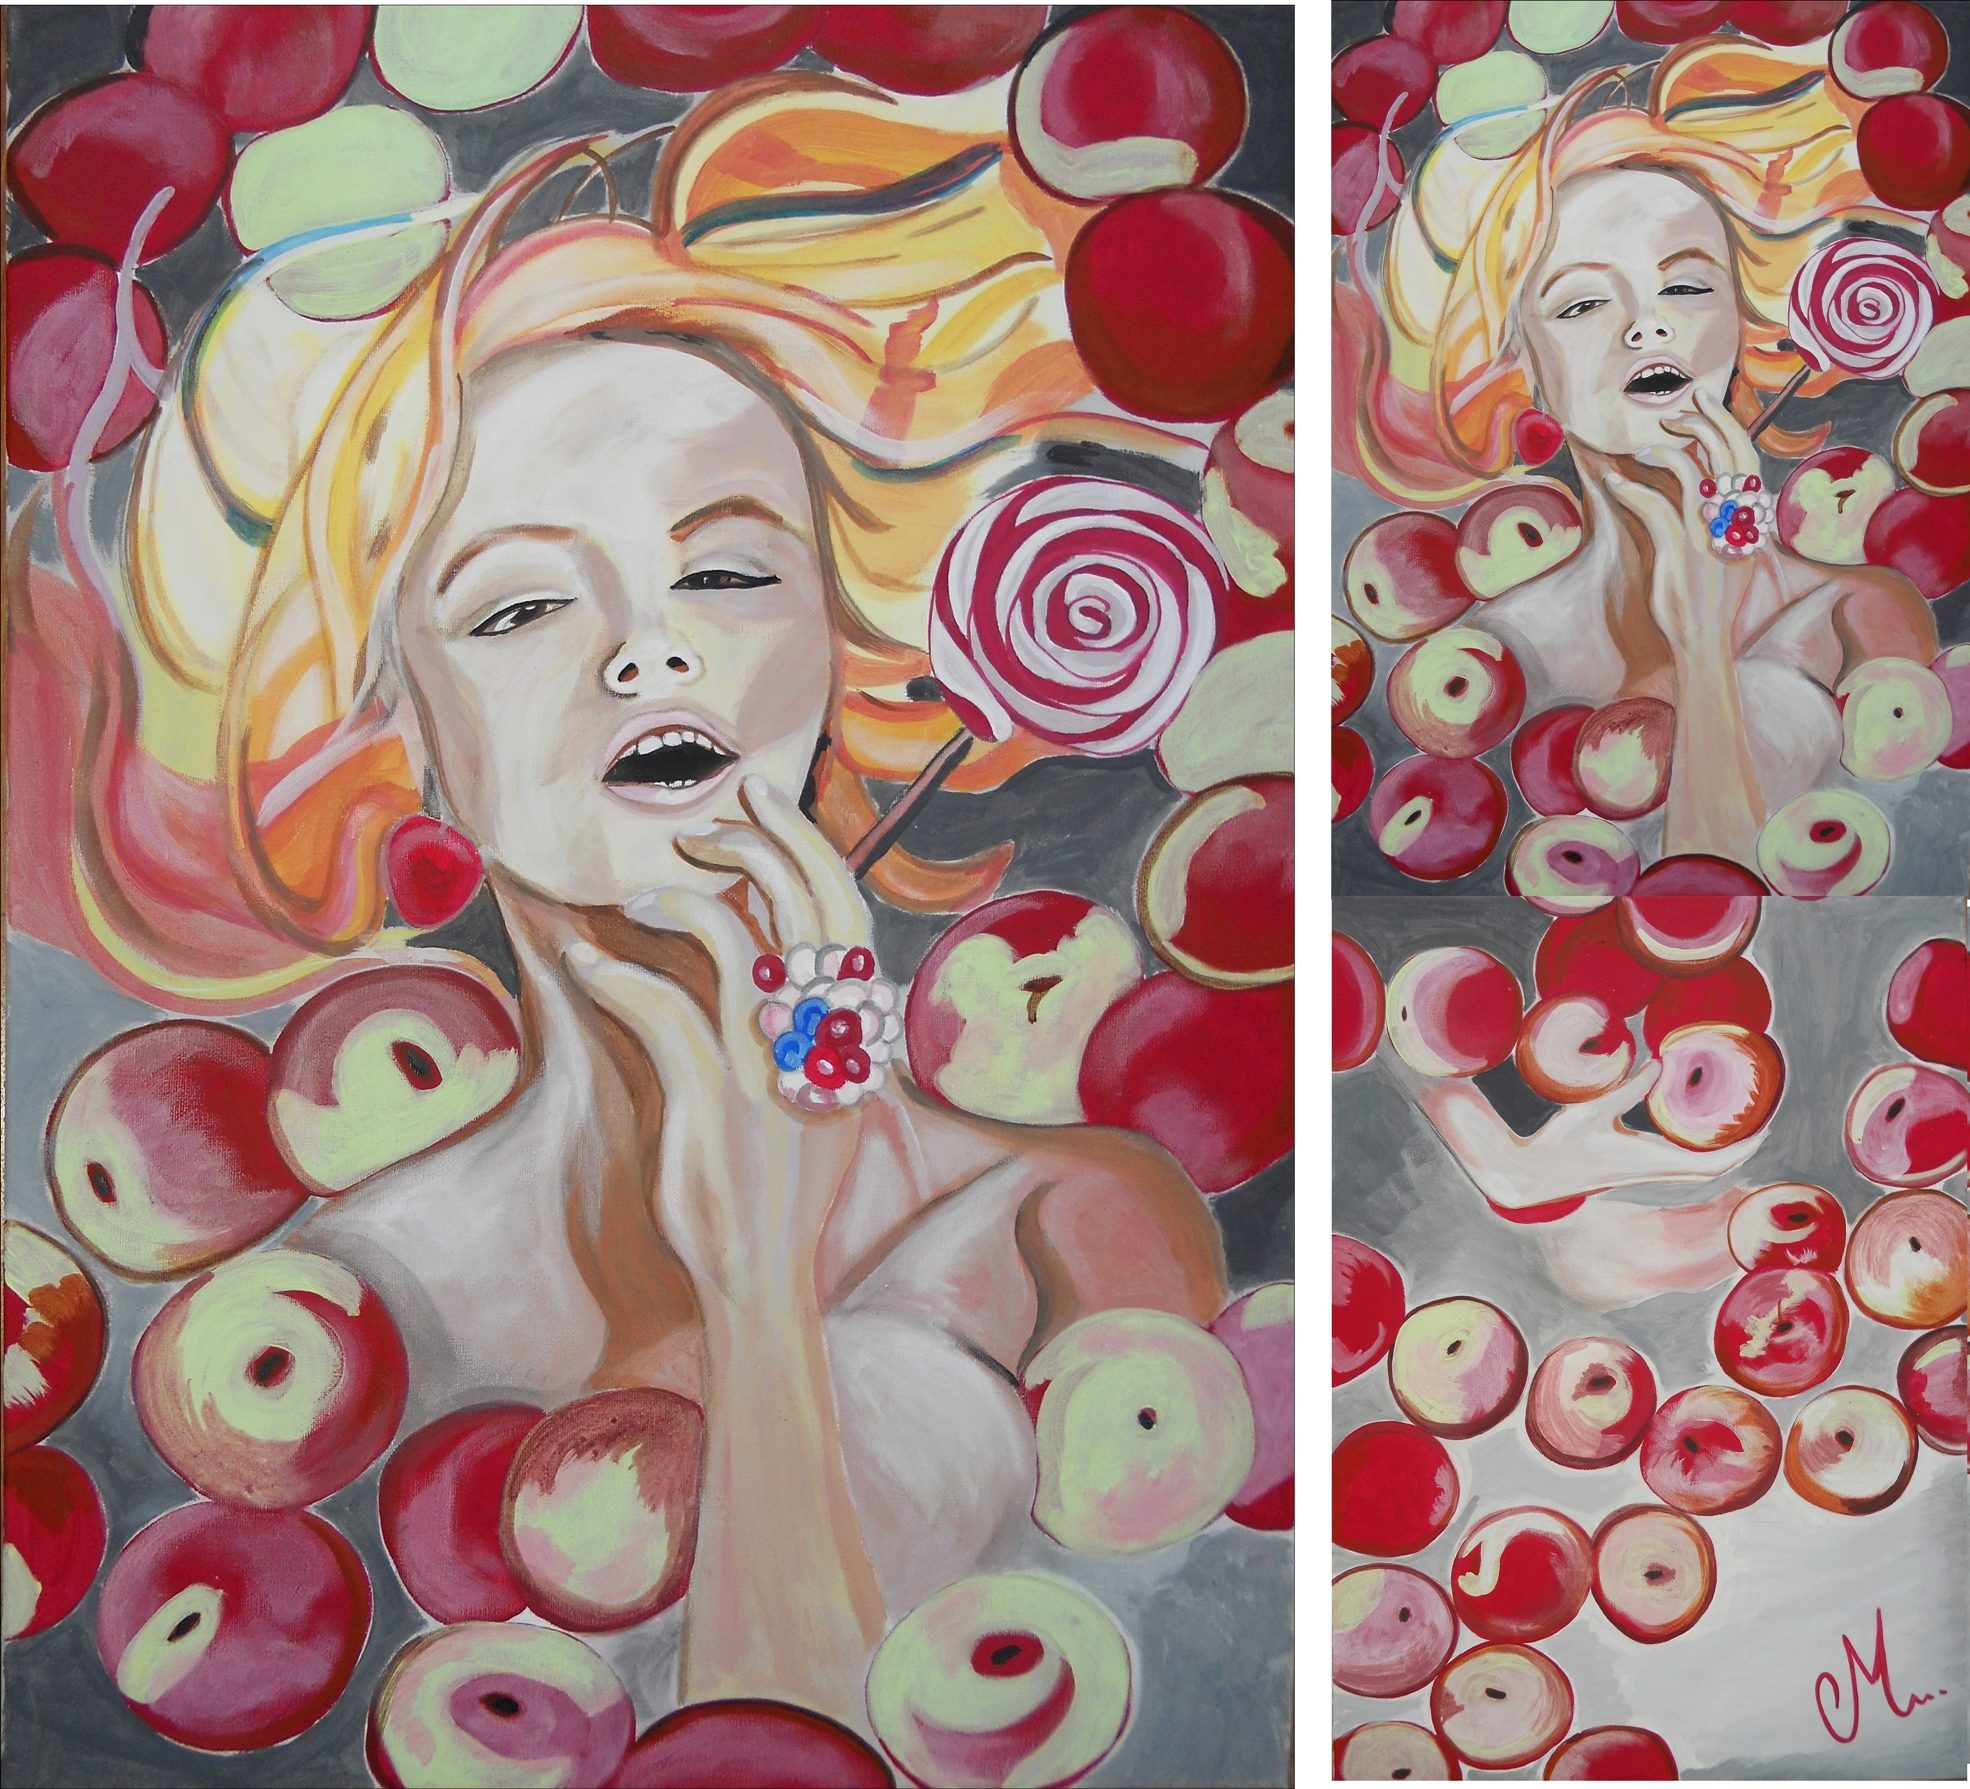 painting woman sweet candy or gluttony.